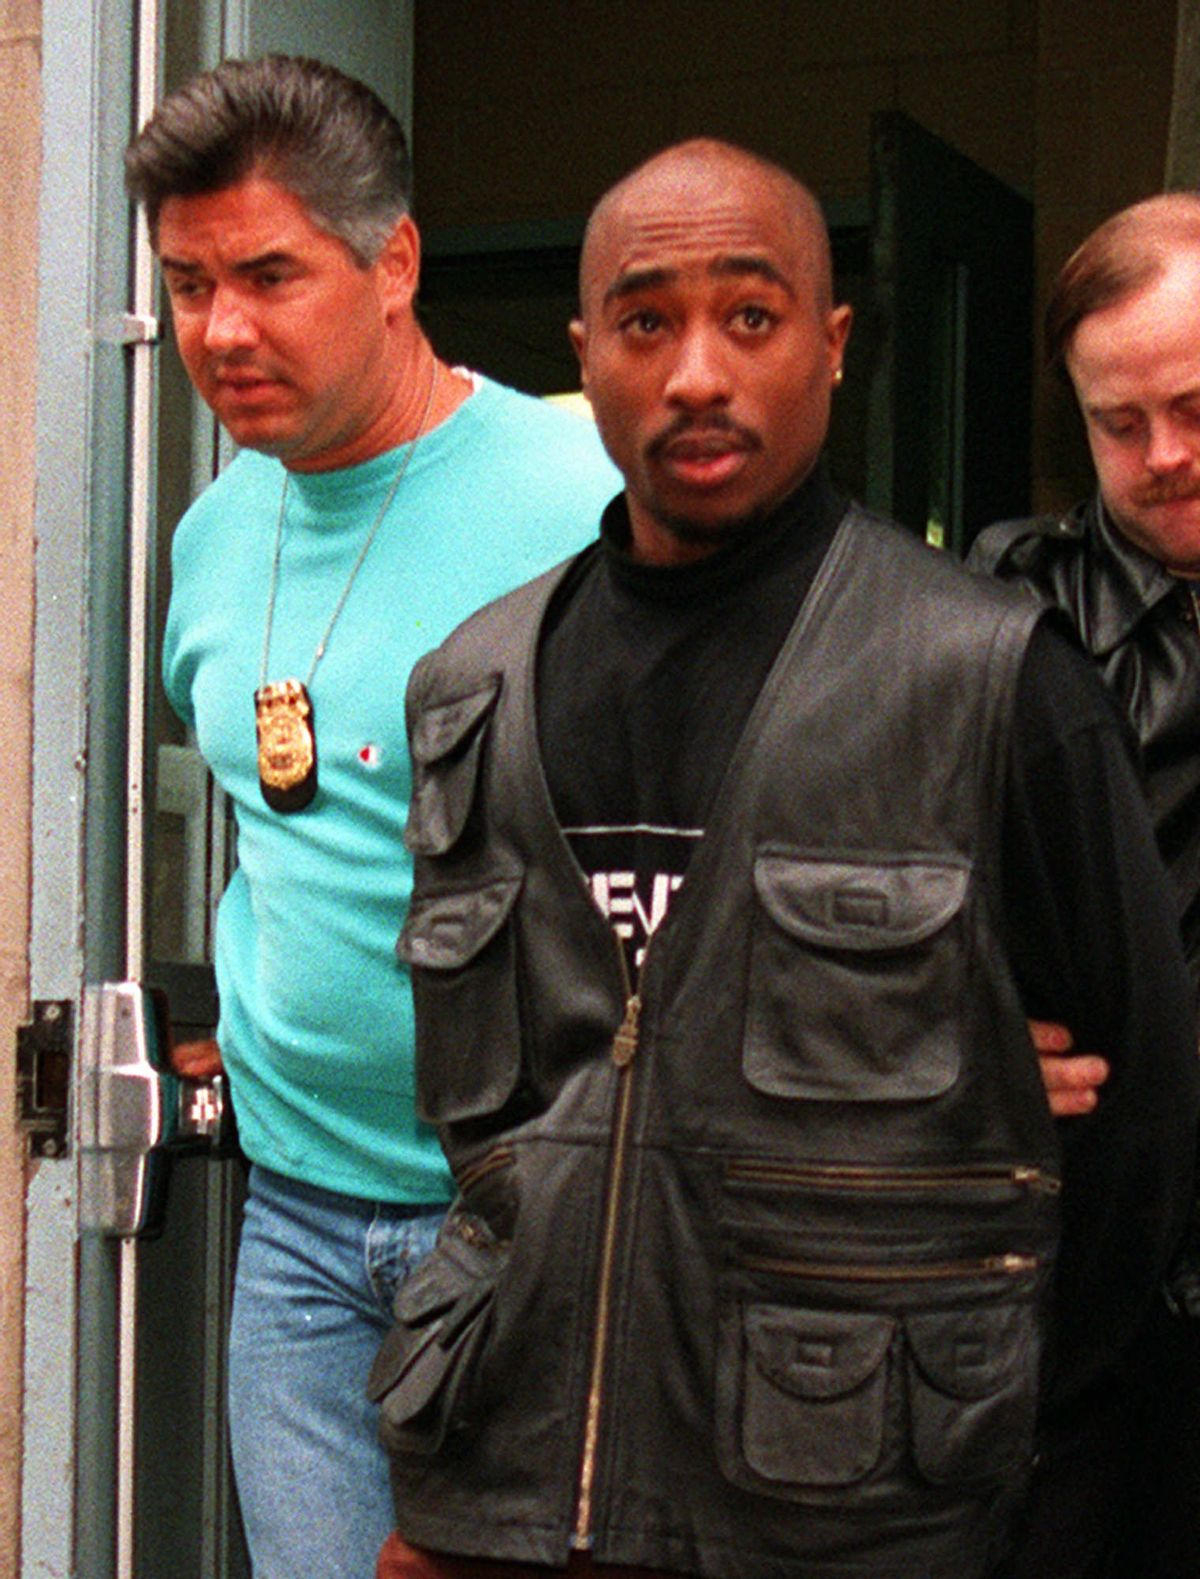 Rap star Tupac Shakur is led from the Manhattan North police precinct after being arrested in an alleged sexual attack on Nov. 19, 1993.  (AP Photo/Justin Sutcliffe) (Associated Press)